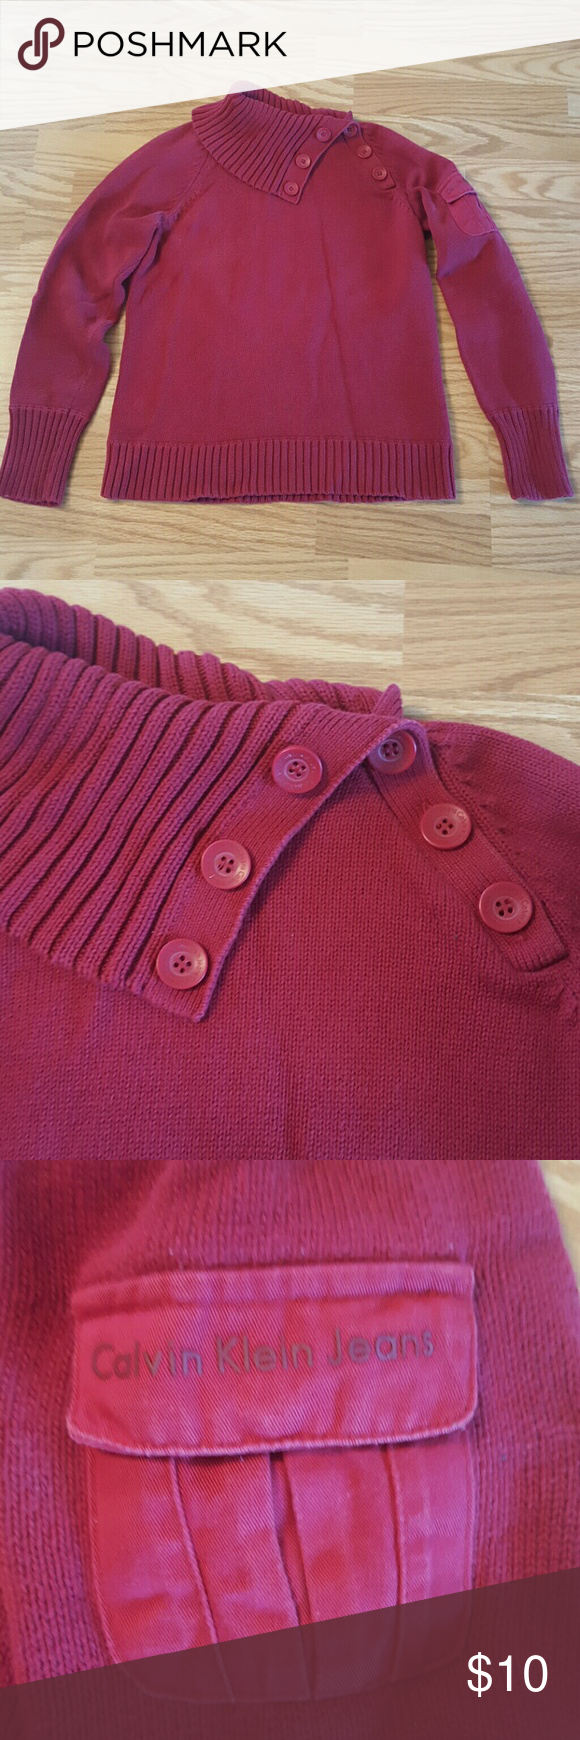 Calvin Klein Cowl Neck Sweater This super cute sweater is in good used condition!! It's Cowl necked and has decorative buttons along Cowl and shoulder!! It also has a cute pocket on the upper left arm! Calvin Klein Jeans Sweaters Cowl & Turtlenecks